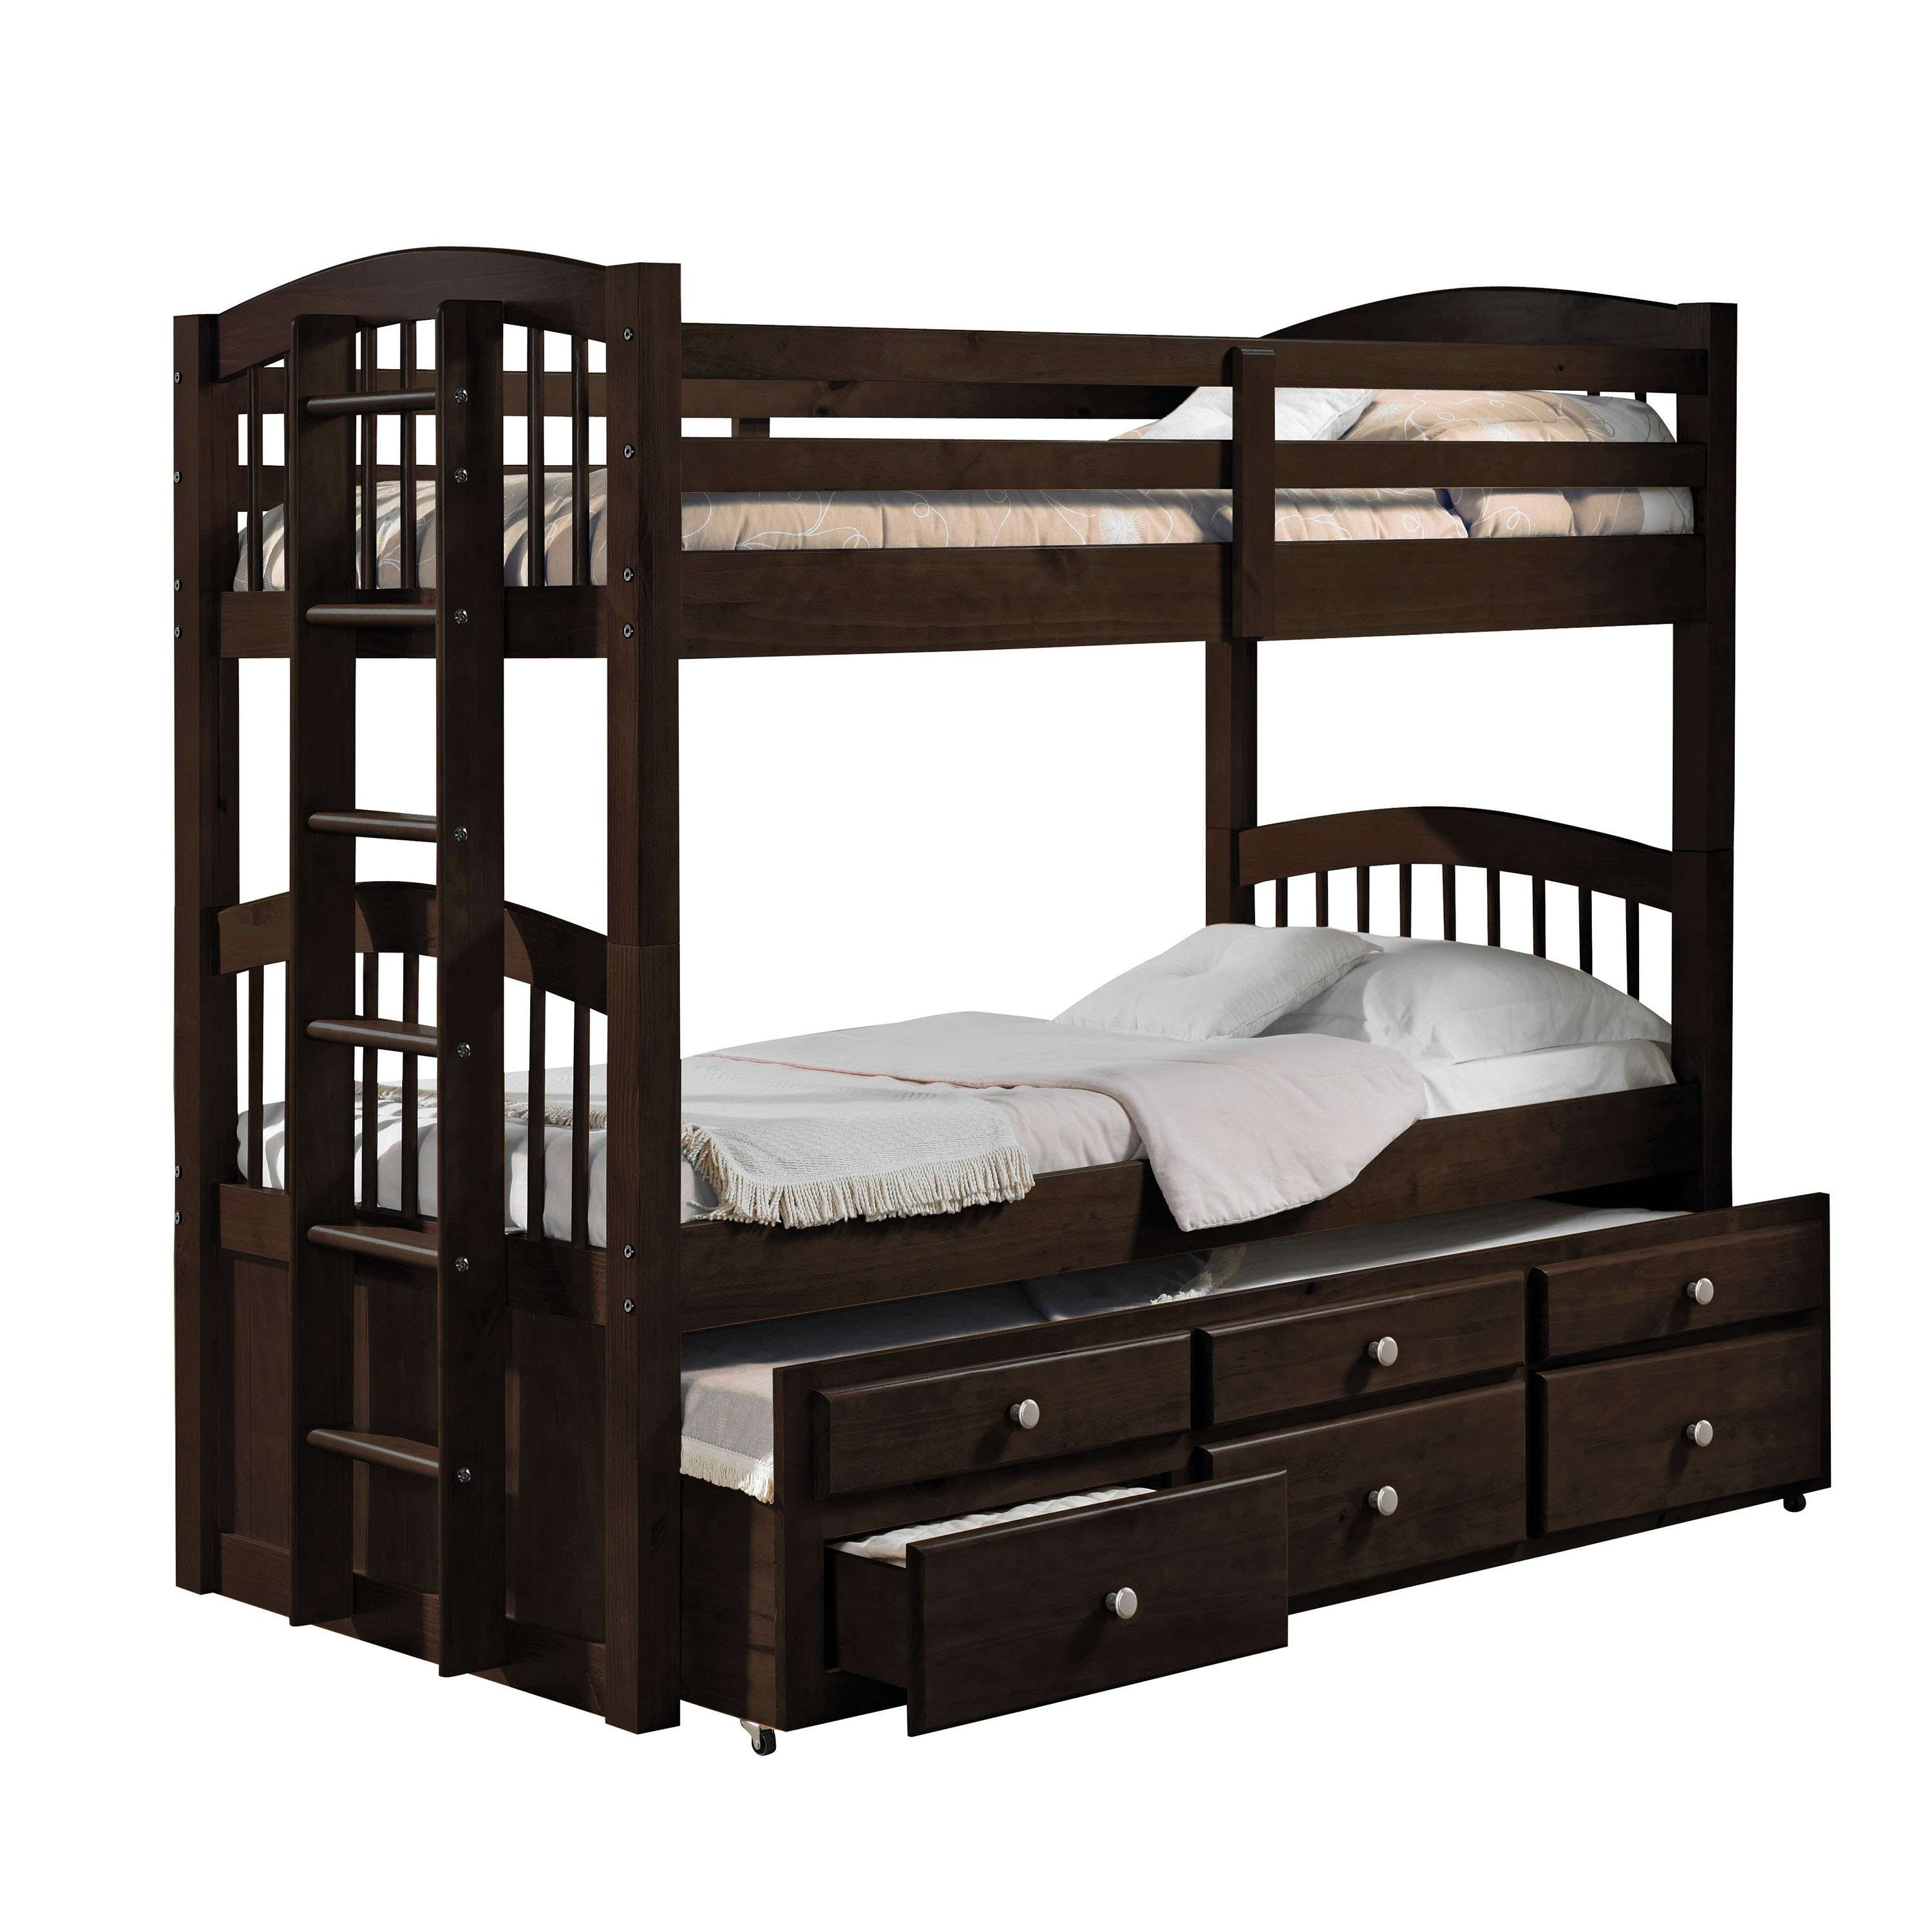 Acme Furniture Micah Espresso Twintwin Bunk Bed Trundle With 3